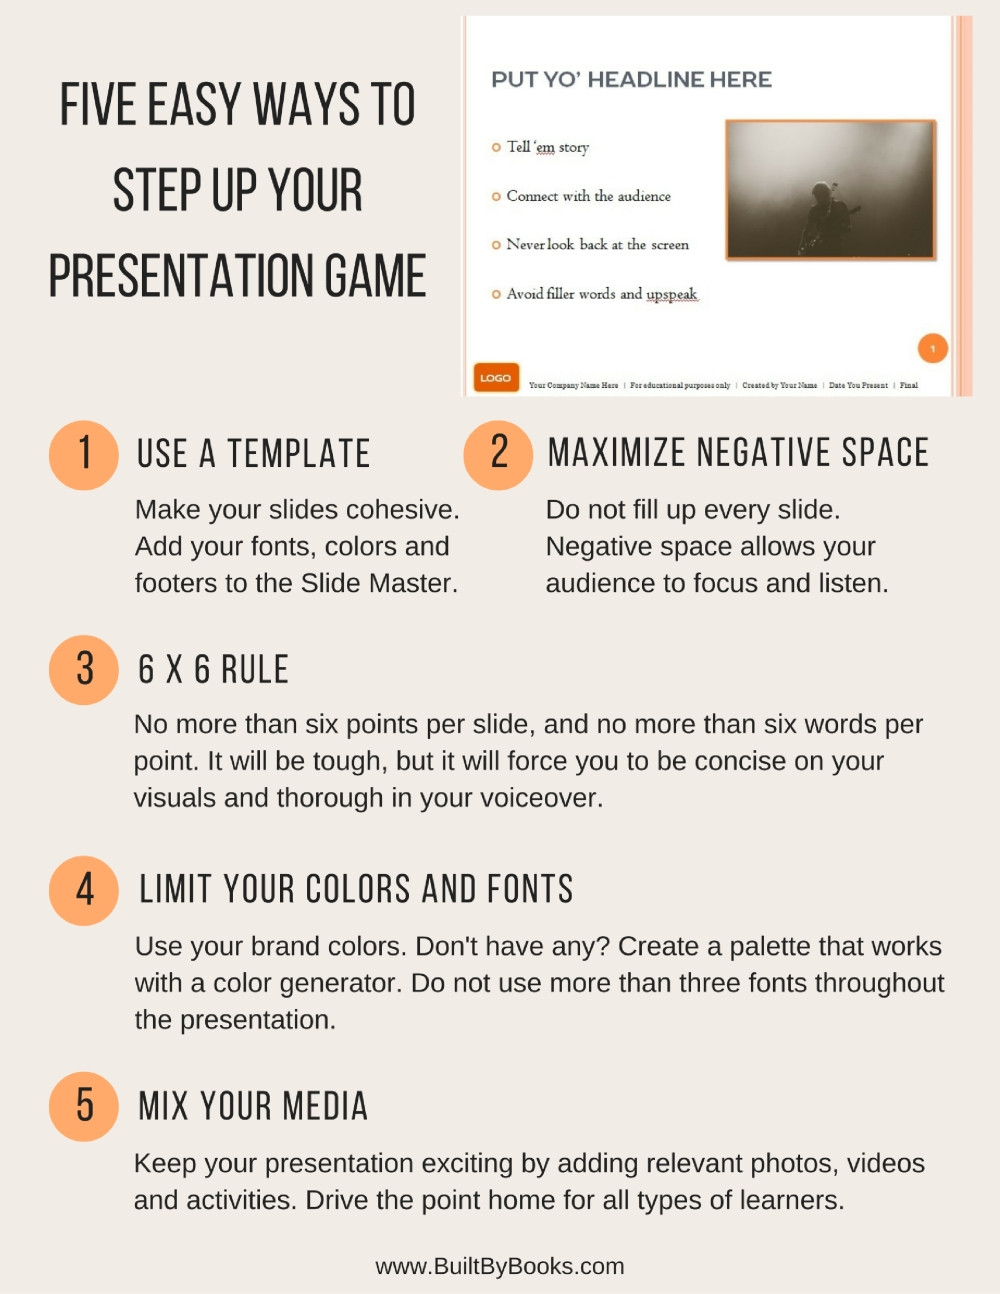 Five easy ways to tweak your next presentation. With visual aids, less is more.